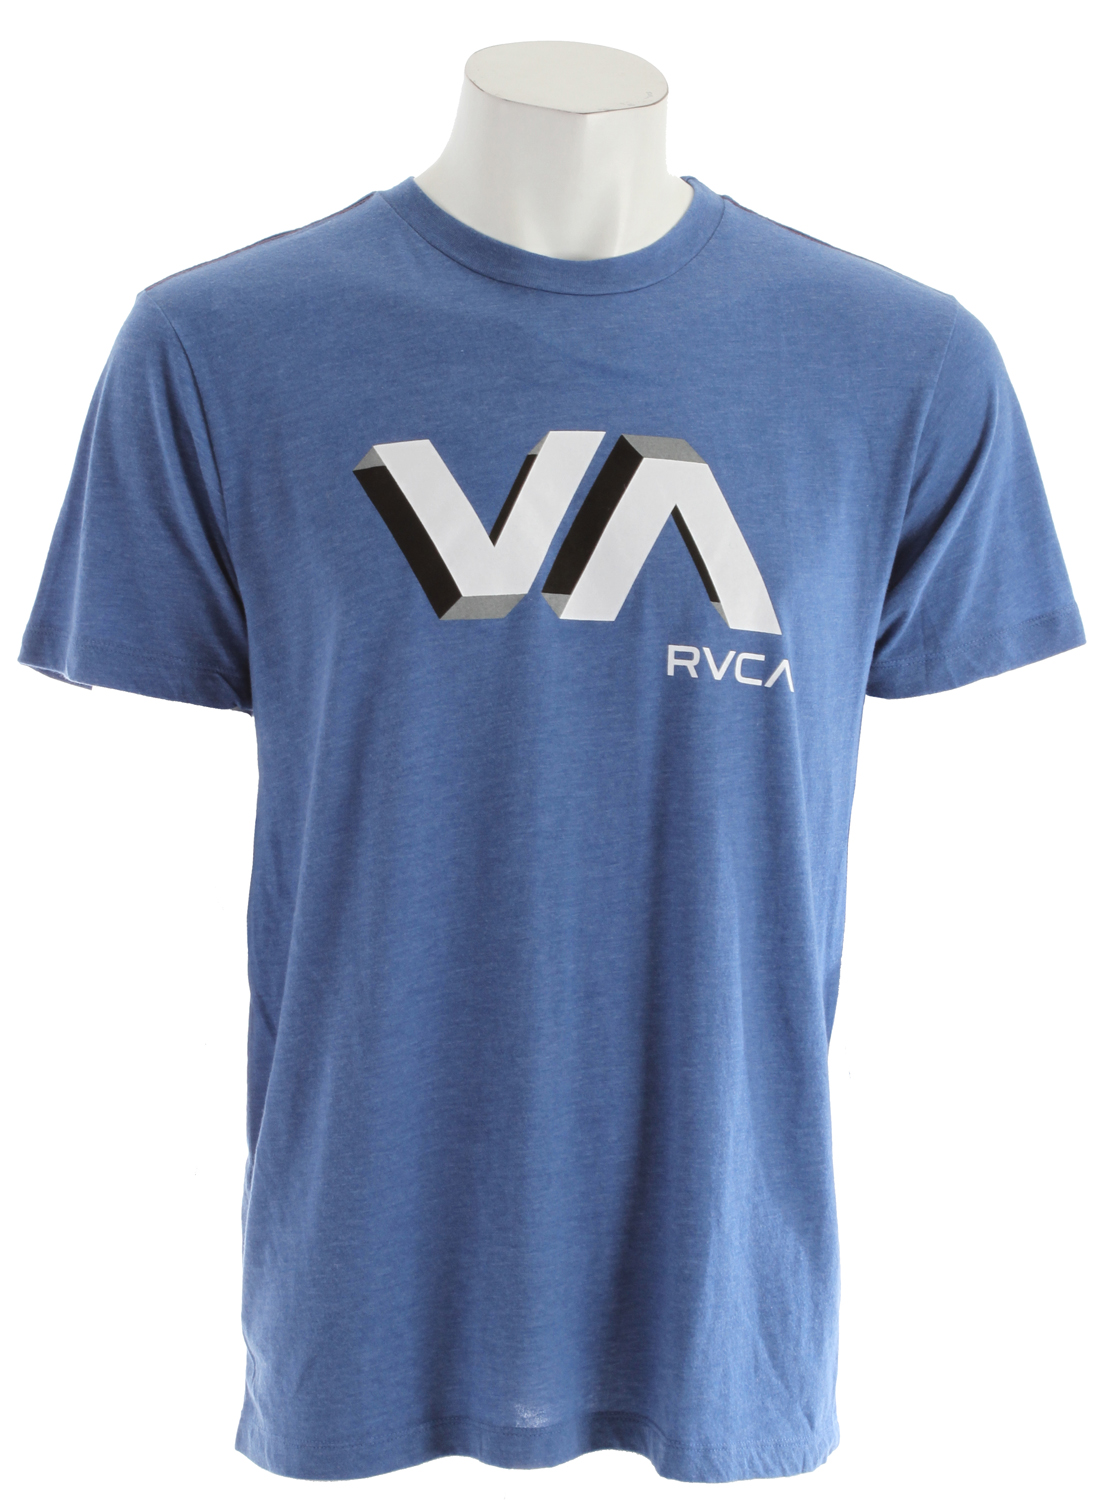 Key Features of the RVCA 3D VA T-Shirt: 50% polyester/50% cotton vintage dye slim fit tee Front print and screened inside neck - $27.00